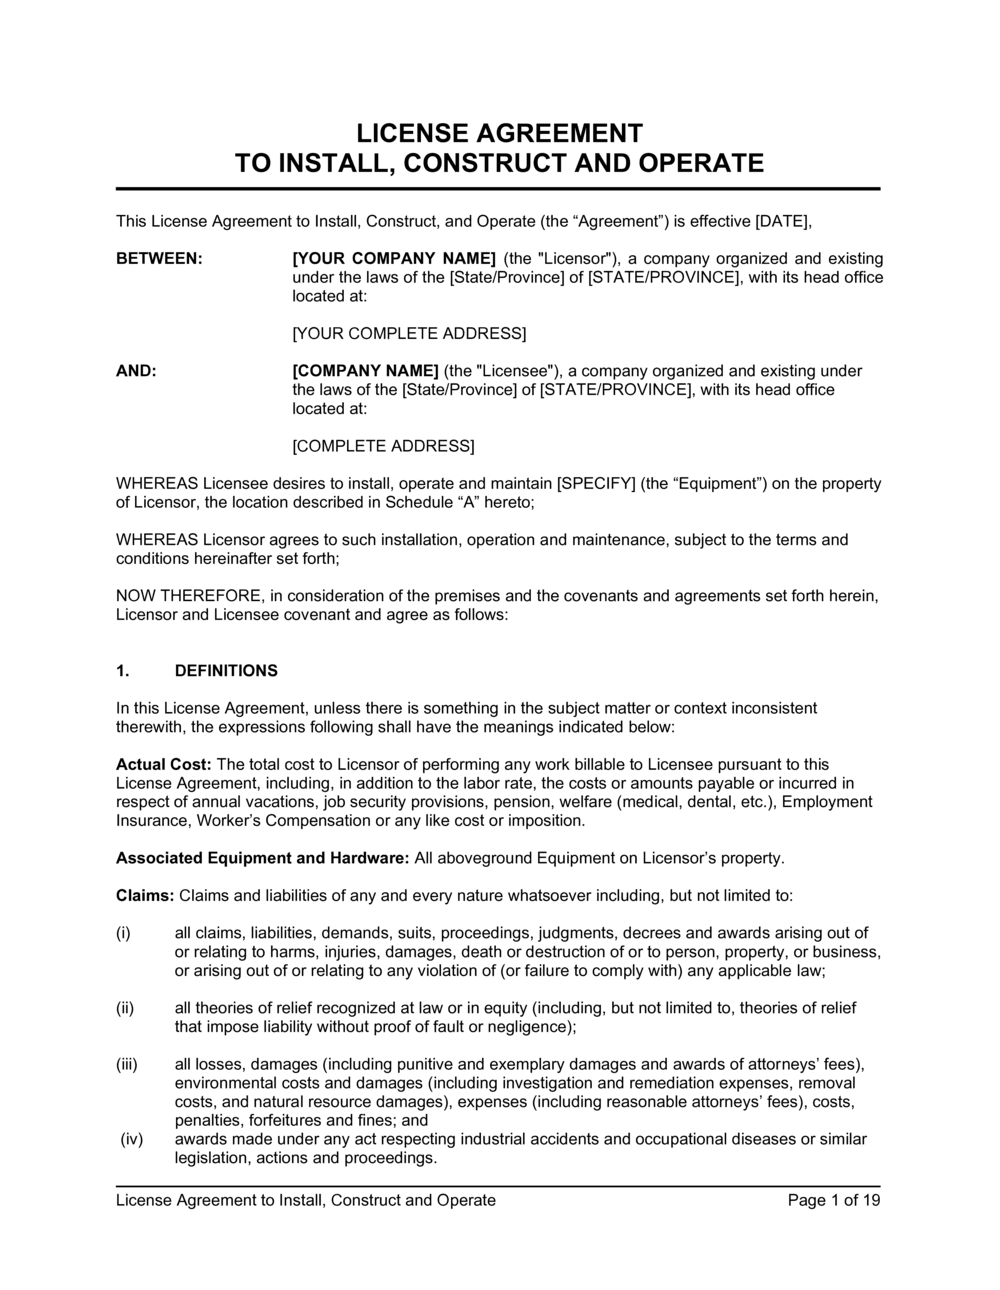 Business-in-a-Box's License Agreement to Install, Construct and Operate Template